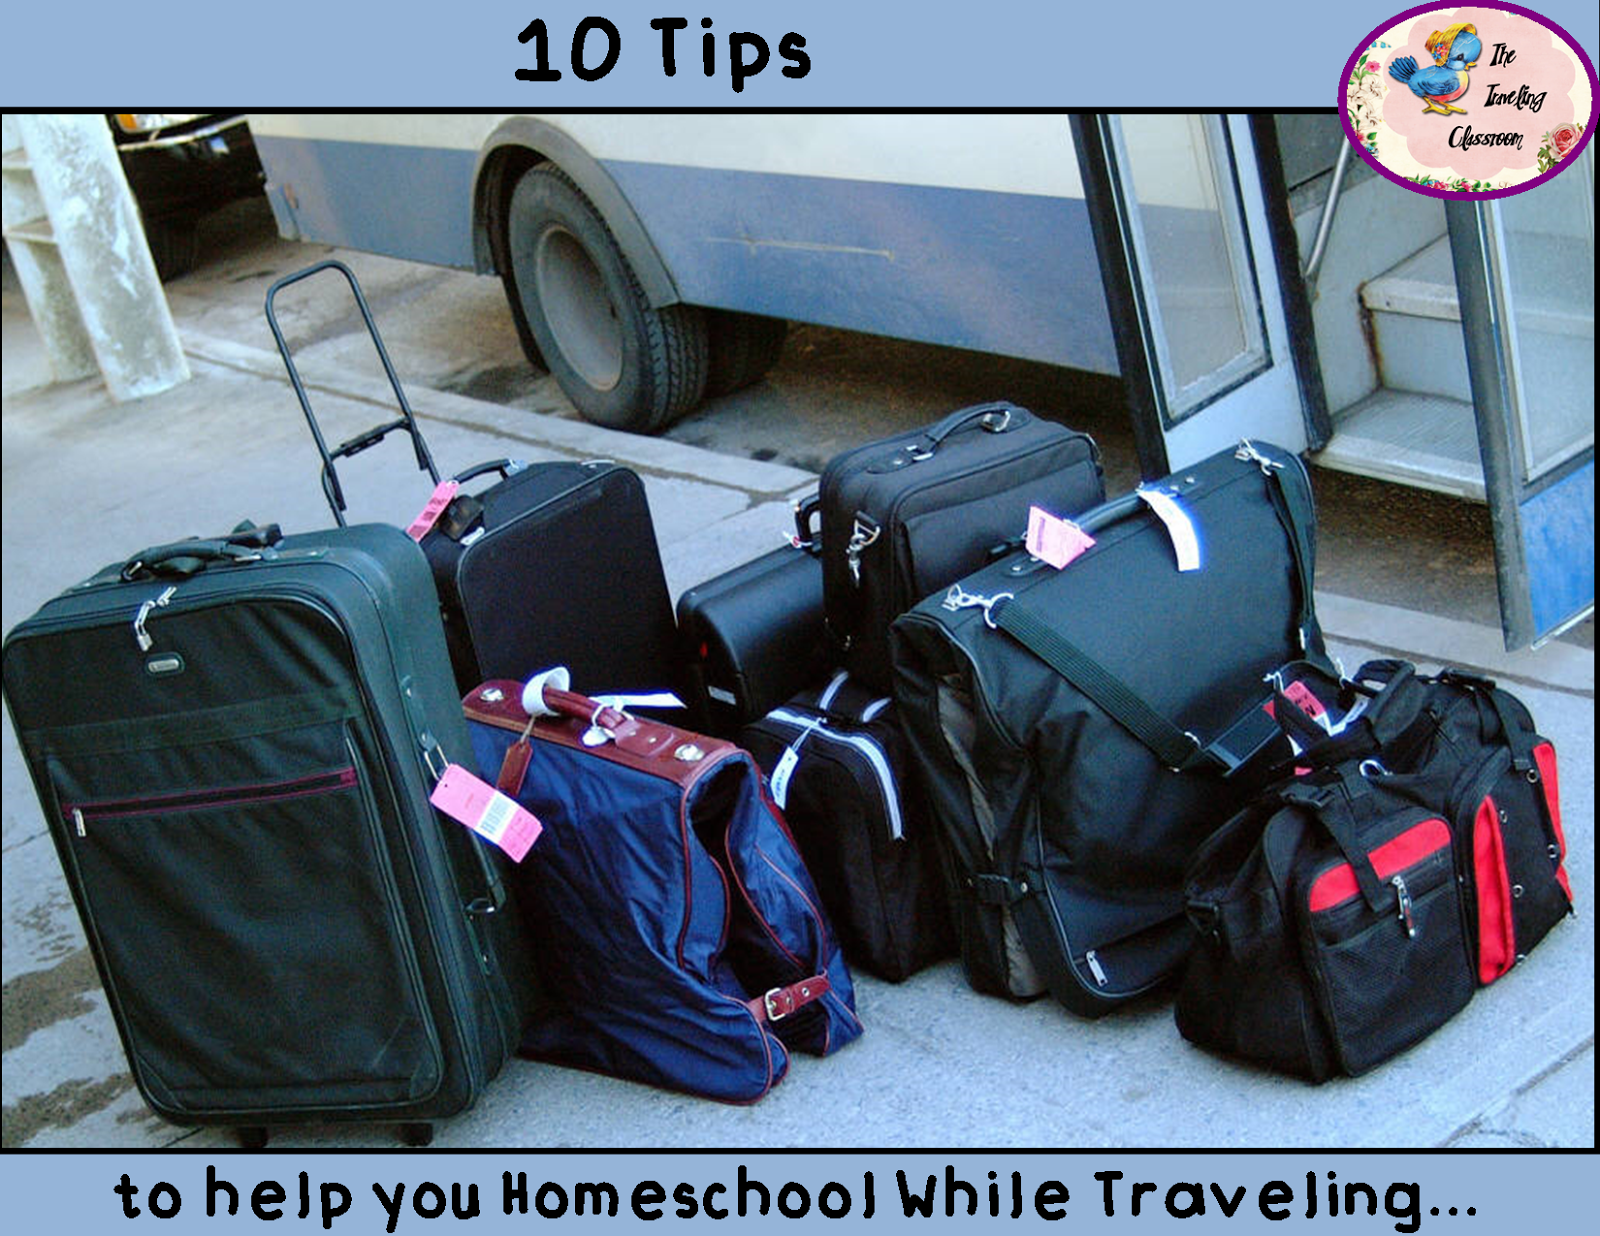 10 Tips to Help You Homeschool While Traveling